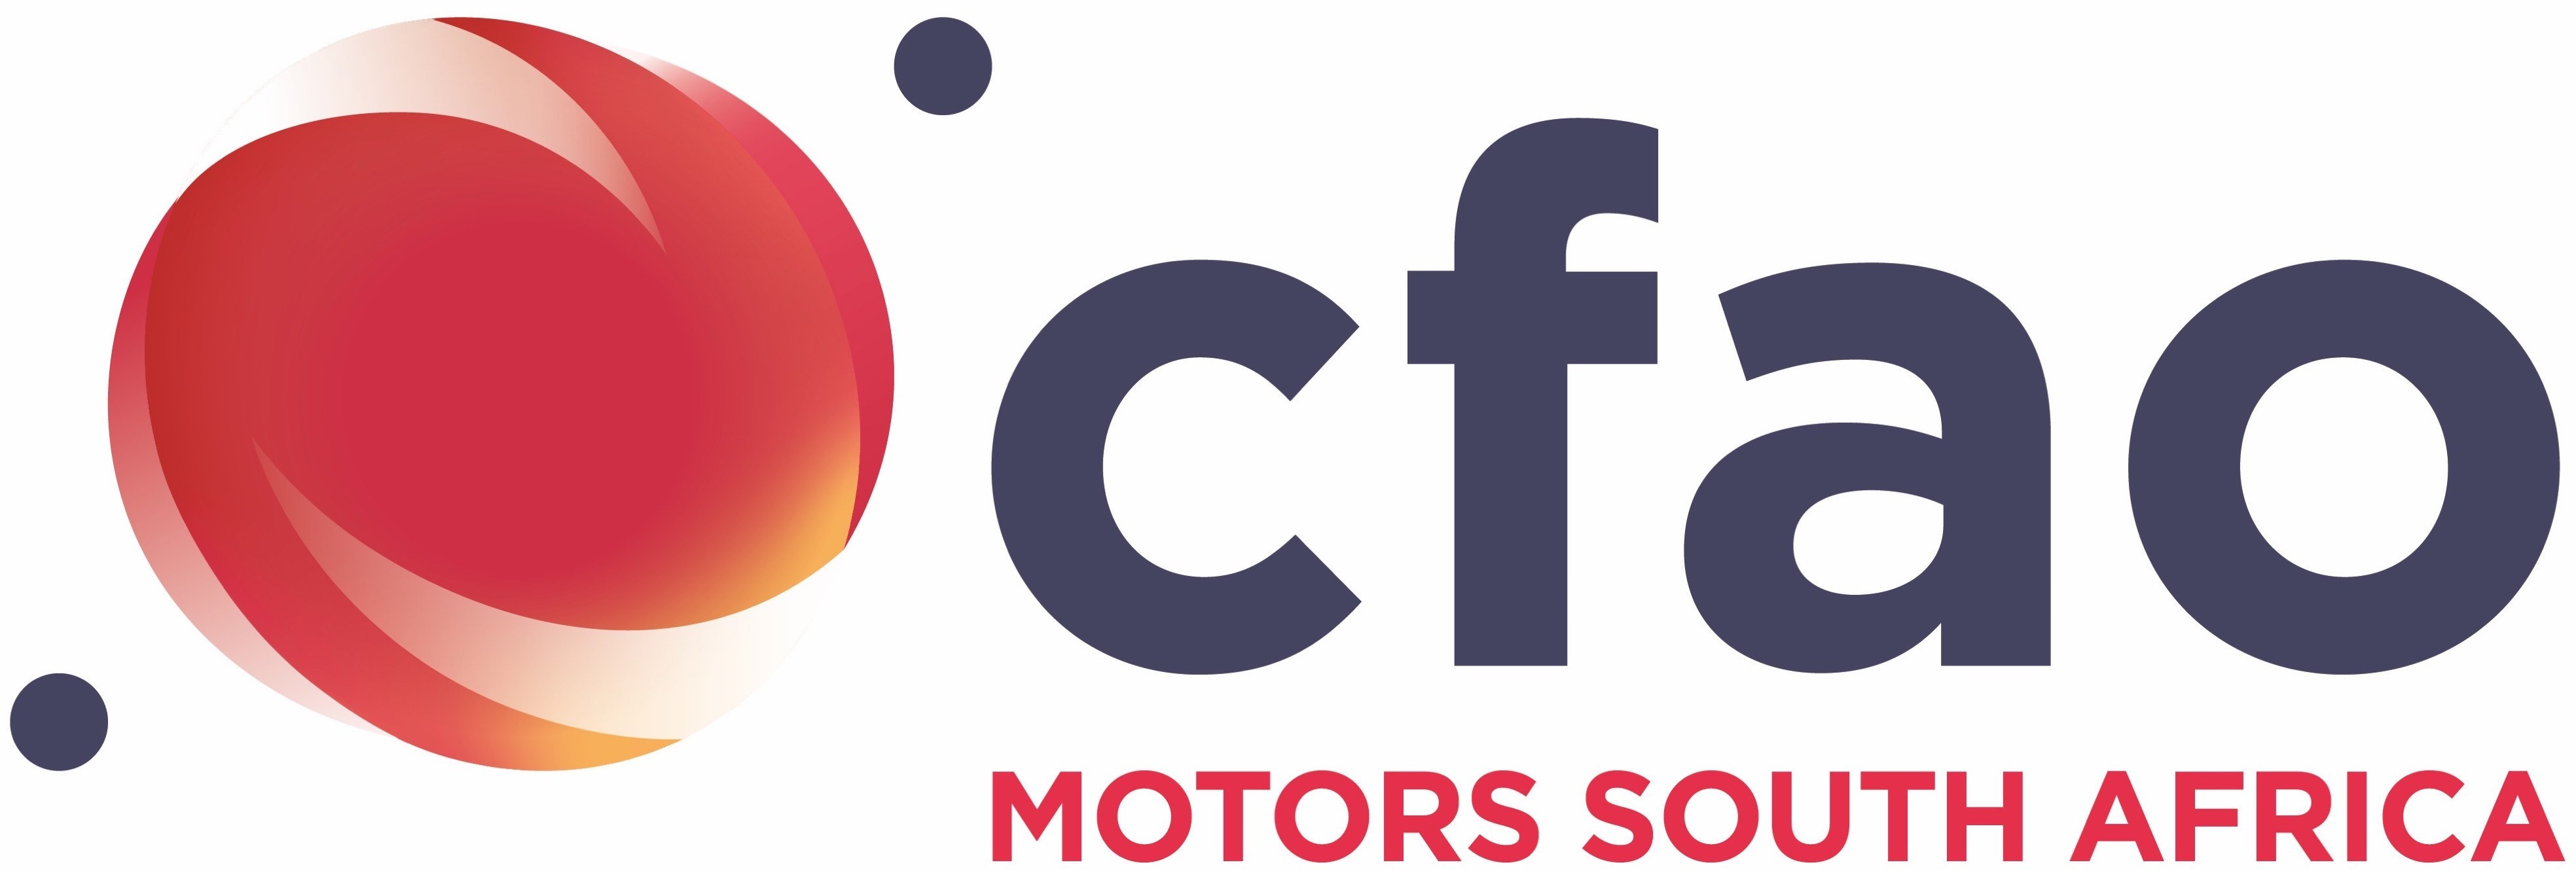 CFAO Motors South Africa logo